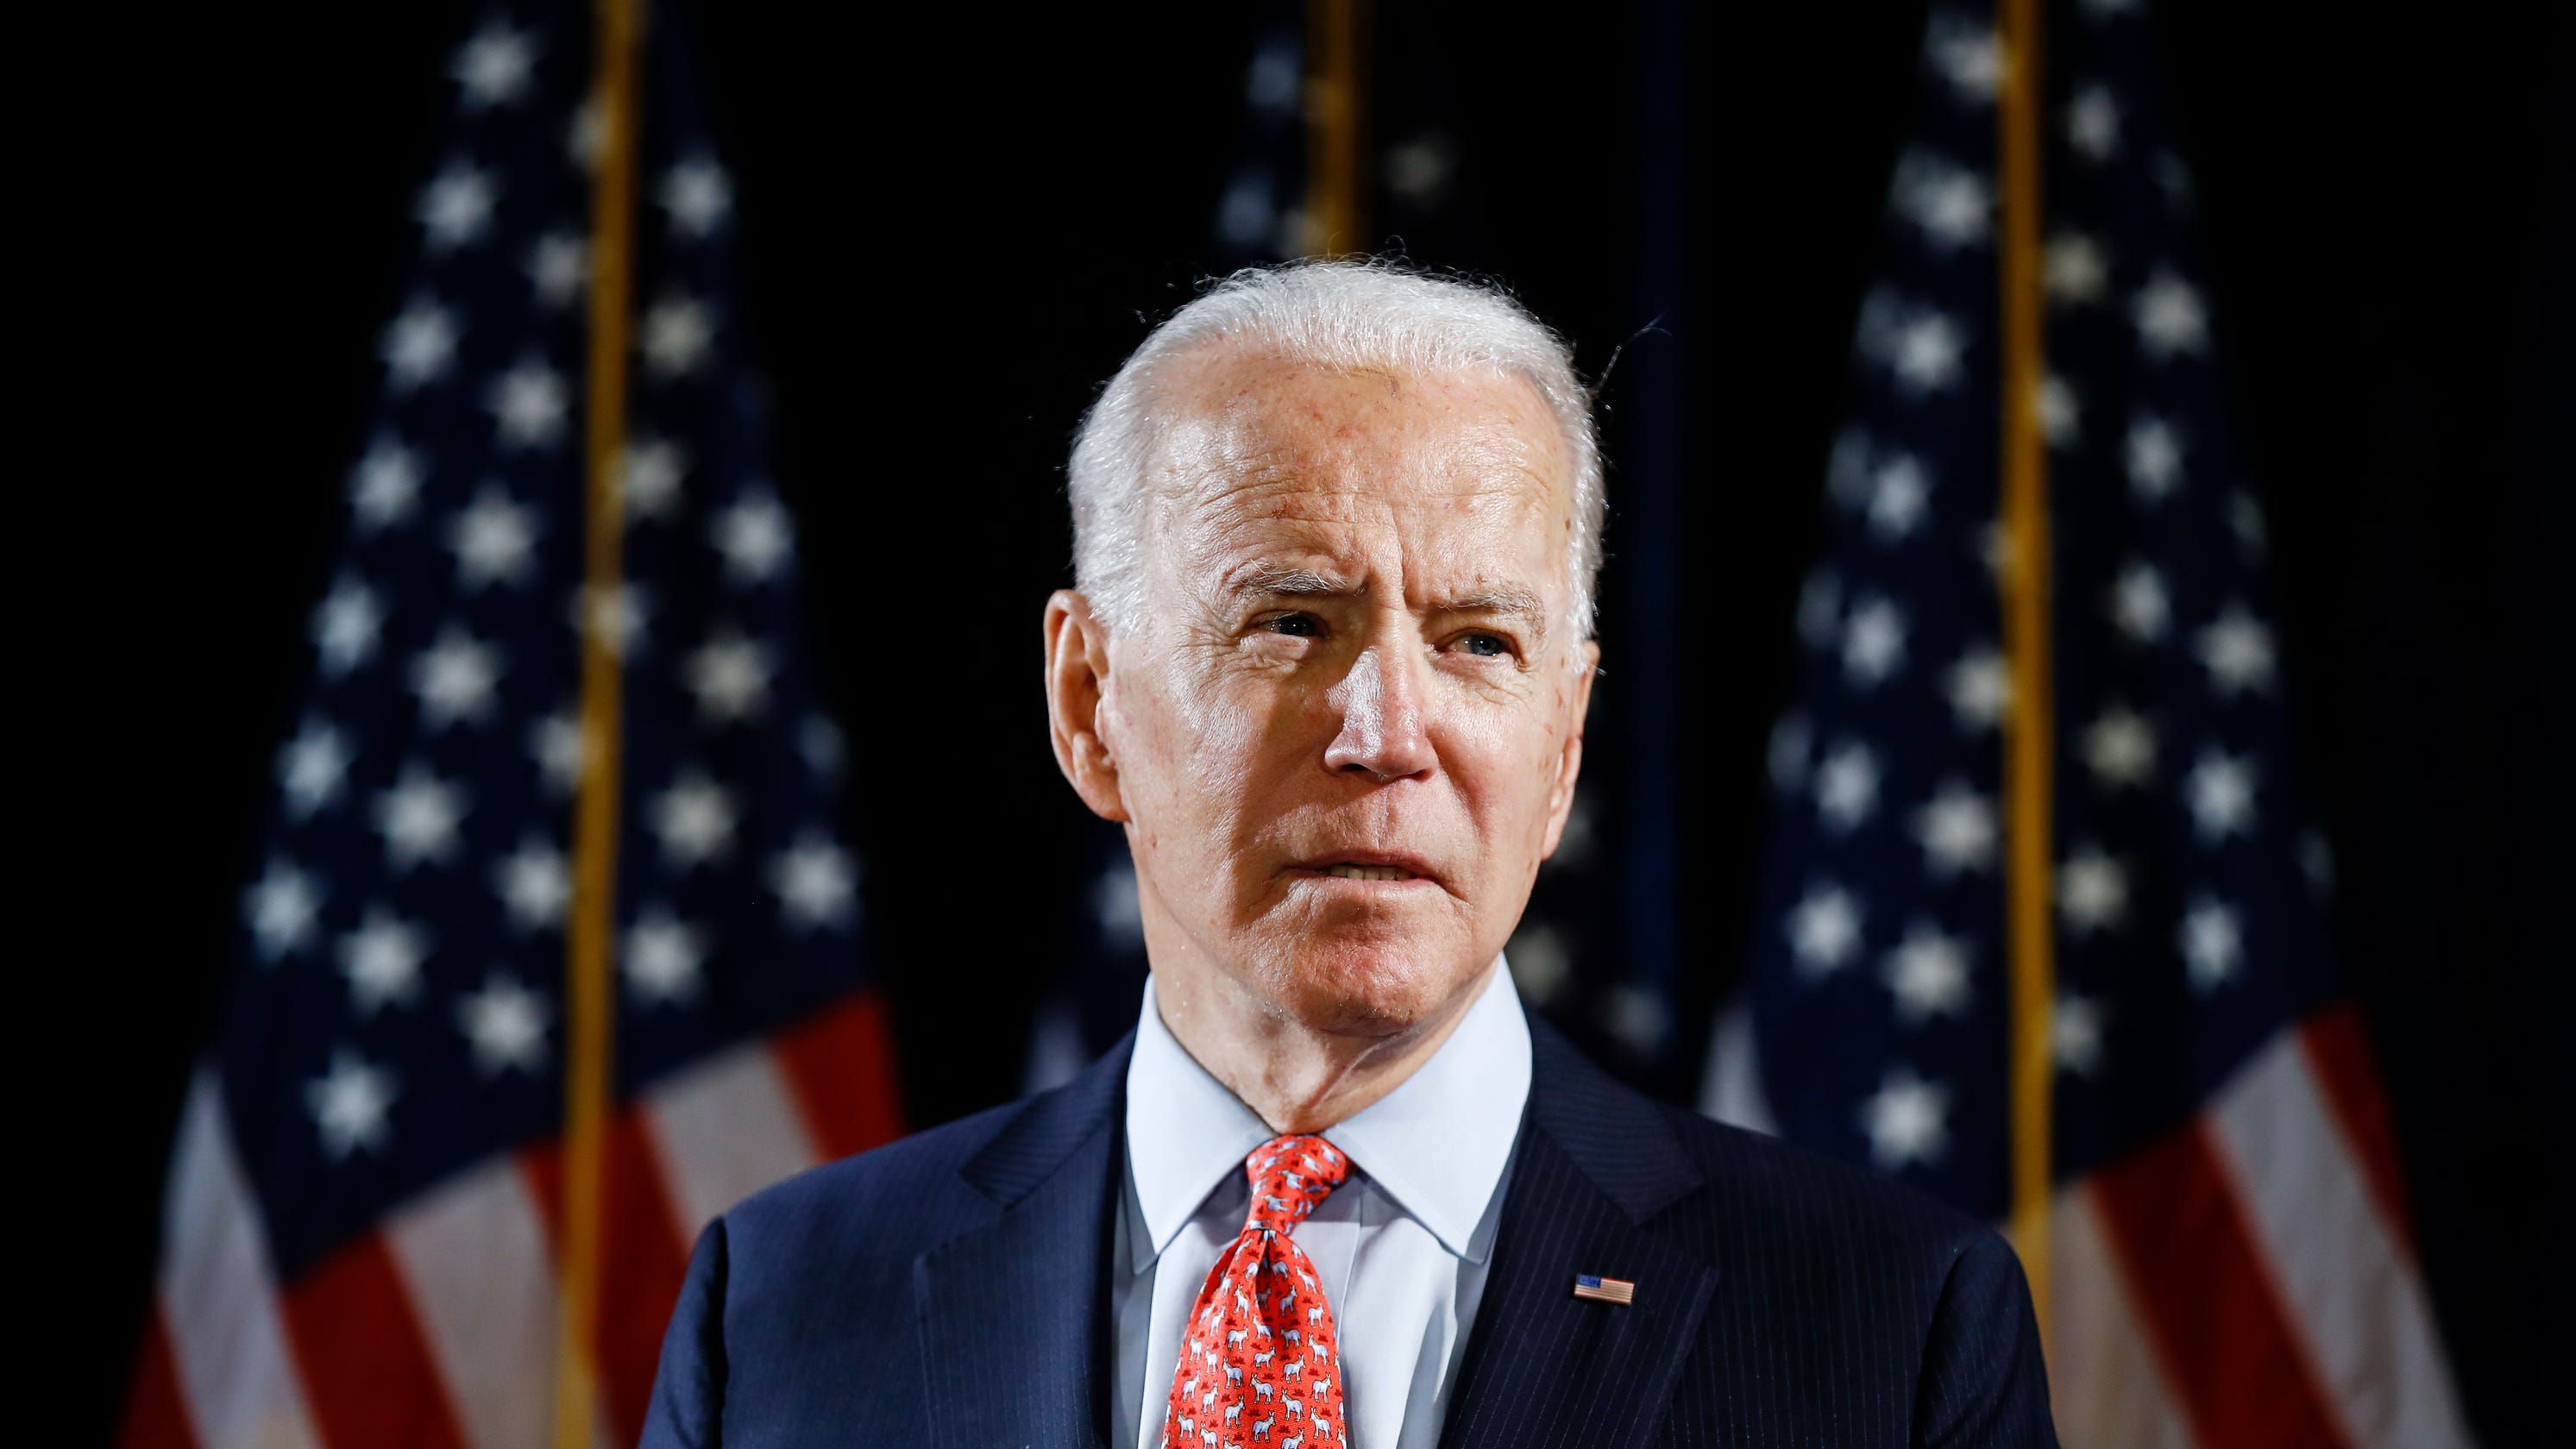 Joe Biden calls on more safety for meat packing workers